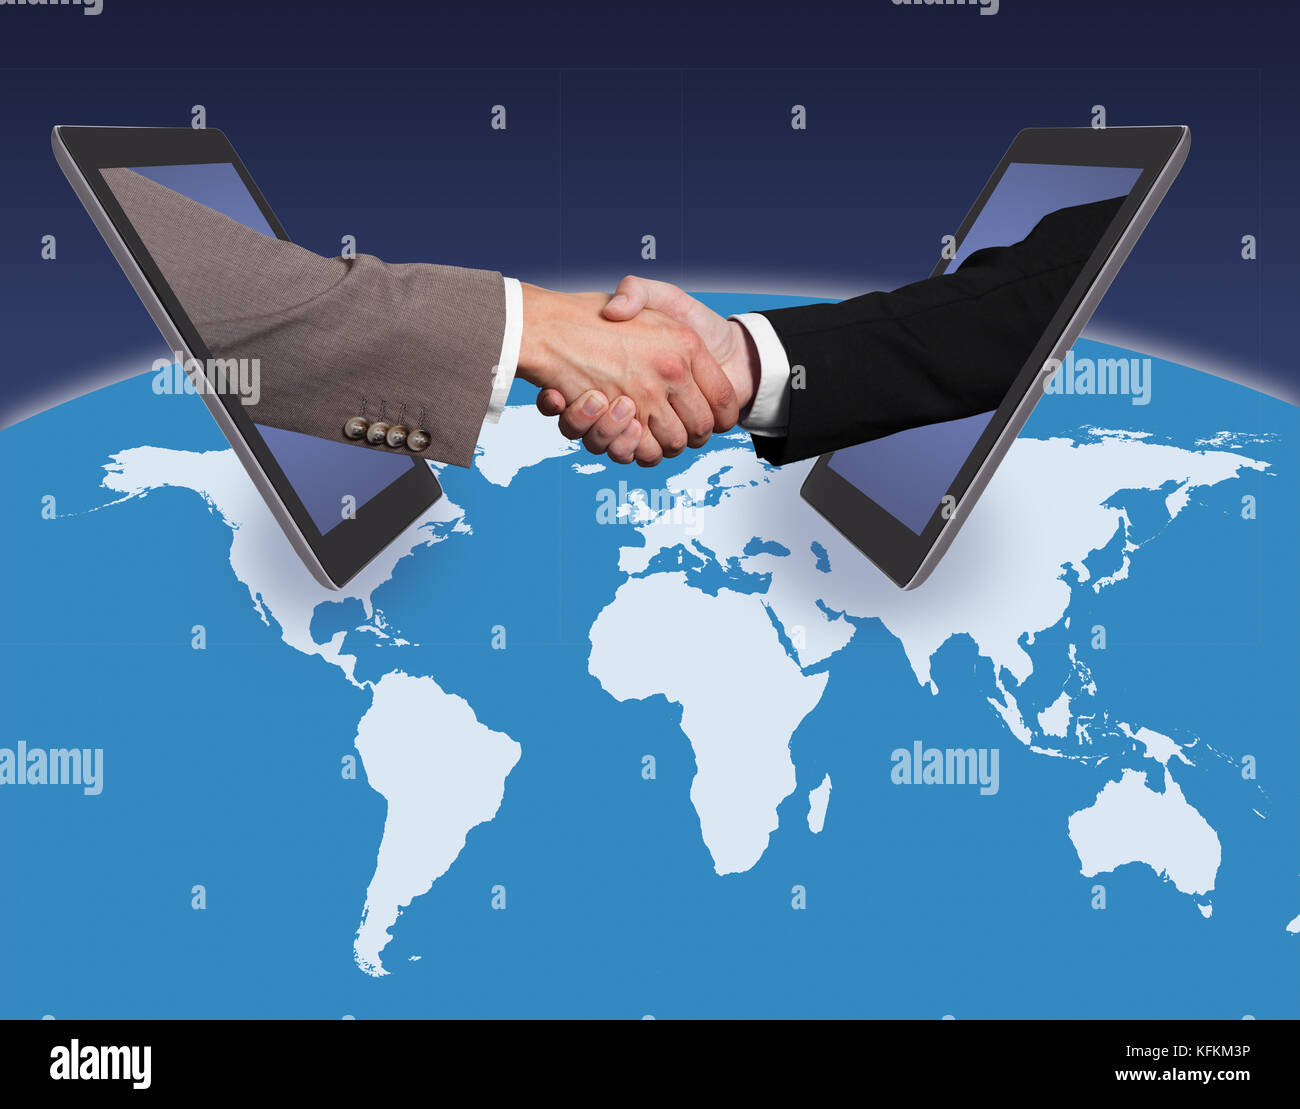 Business handshake emerging from digital tablets on world map business handshake emerging from digital tablets on world map against blue background source of reference map httpvisibleearthsaviewp sciox Image collections